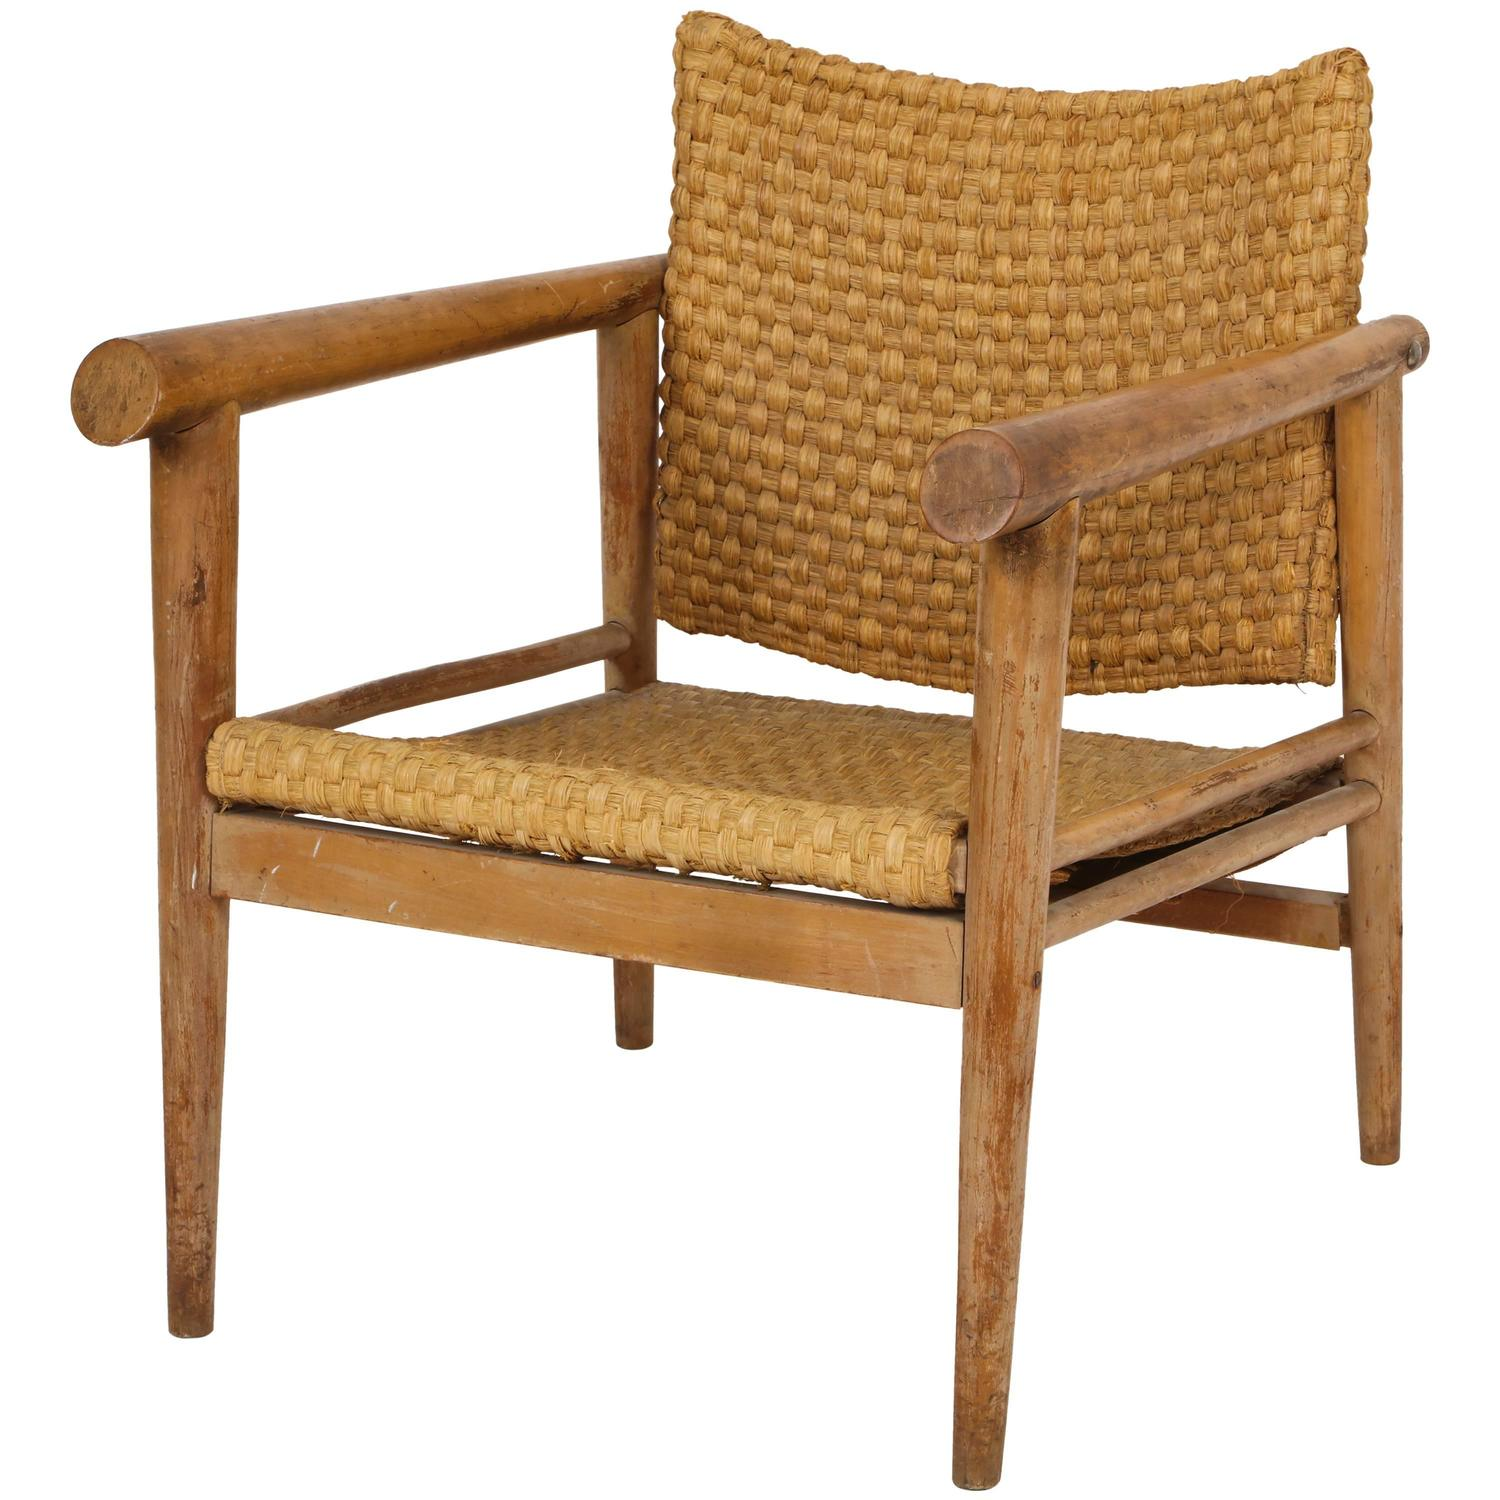 Straw Wicker Woven Rush Chair Mid Century Attr. Jean Michel Frank, 1930  France For Sale At 1stdibs